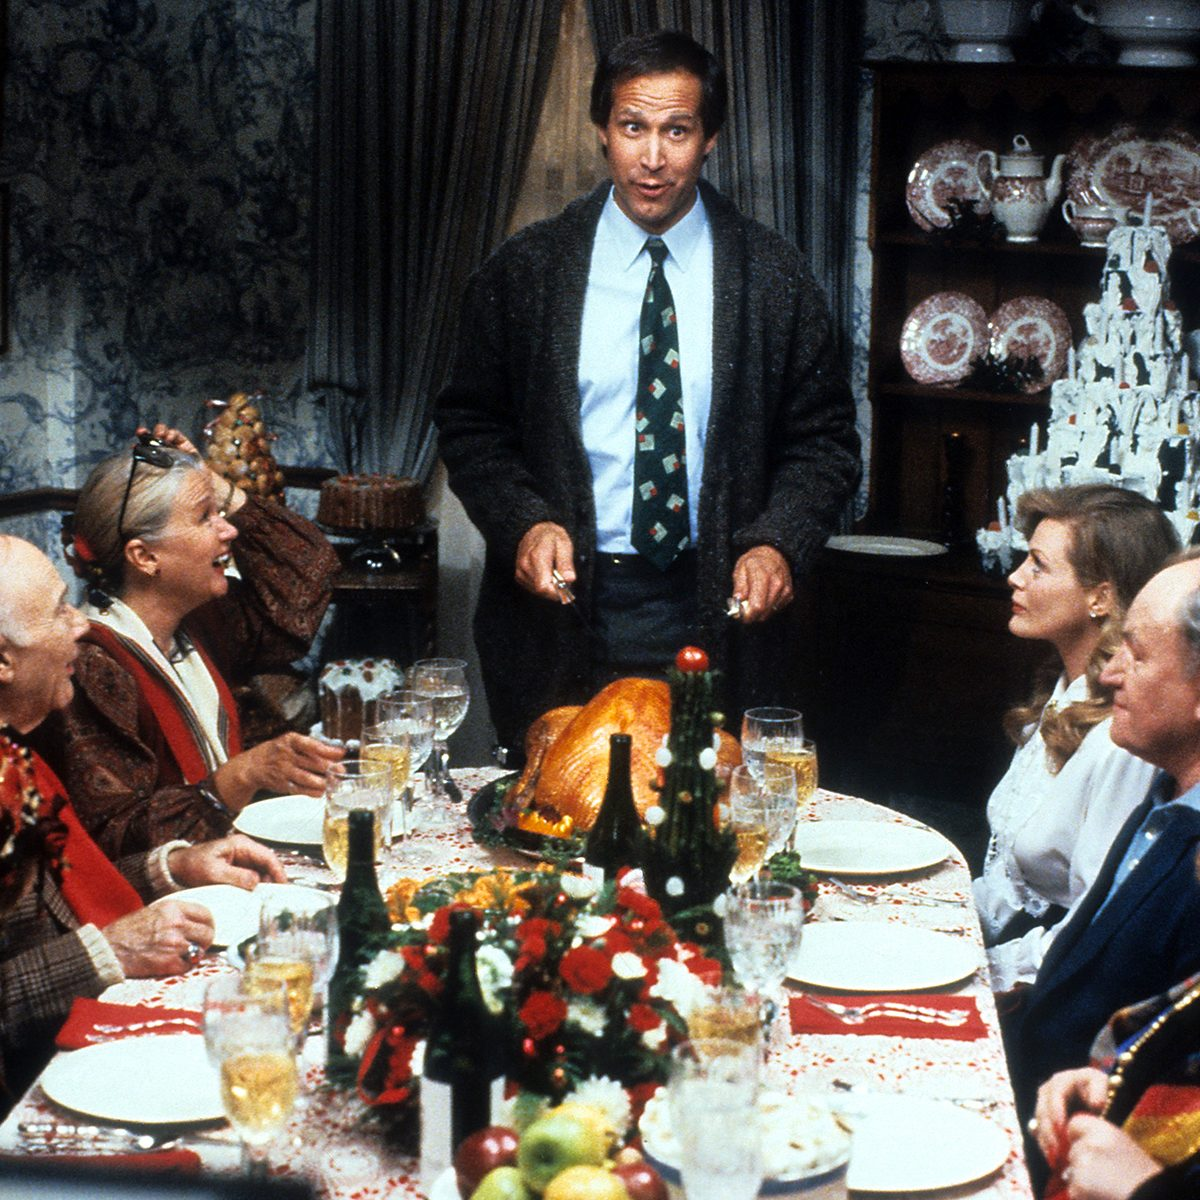 Chevy Chase stands at the head of the table in a scene from the film 'Christmas Vacation', 1989. (Photo by Warner Brothers/Getty Images)